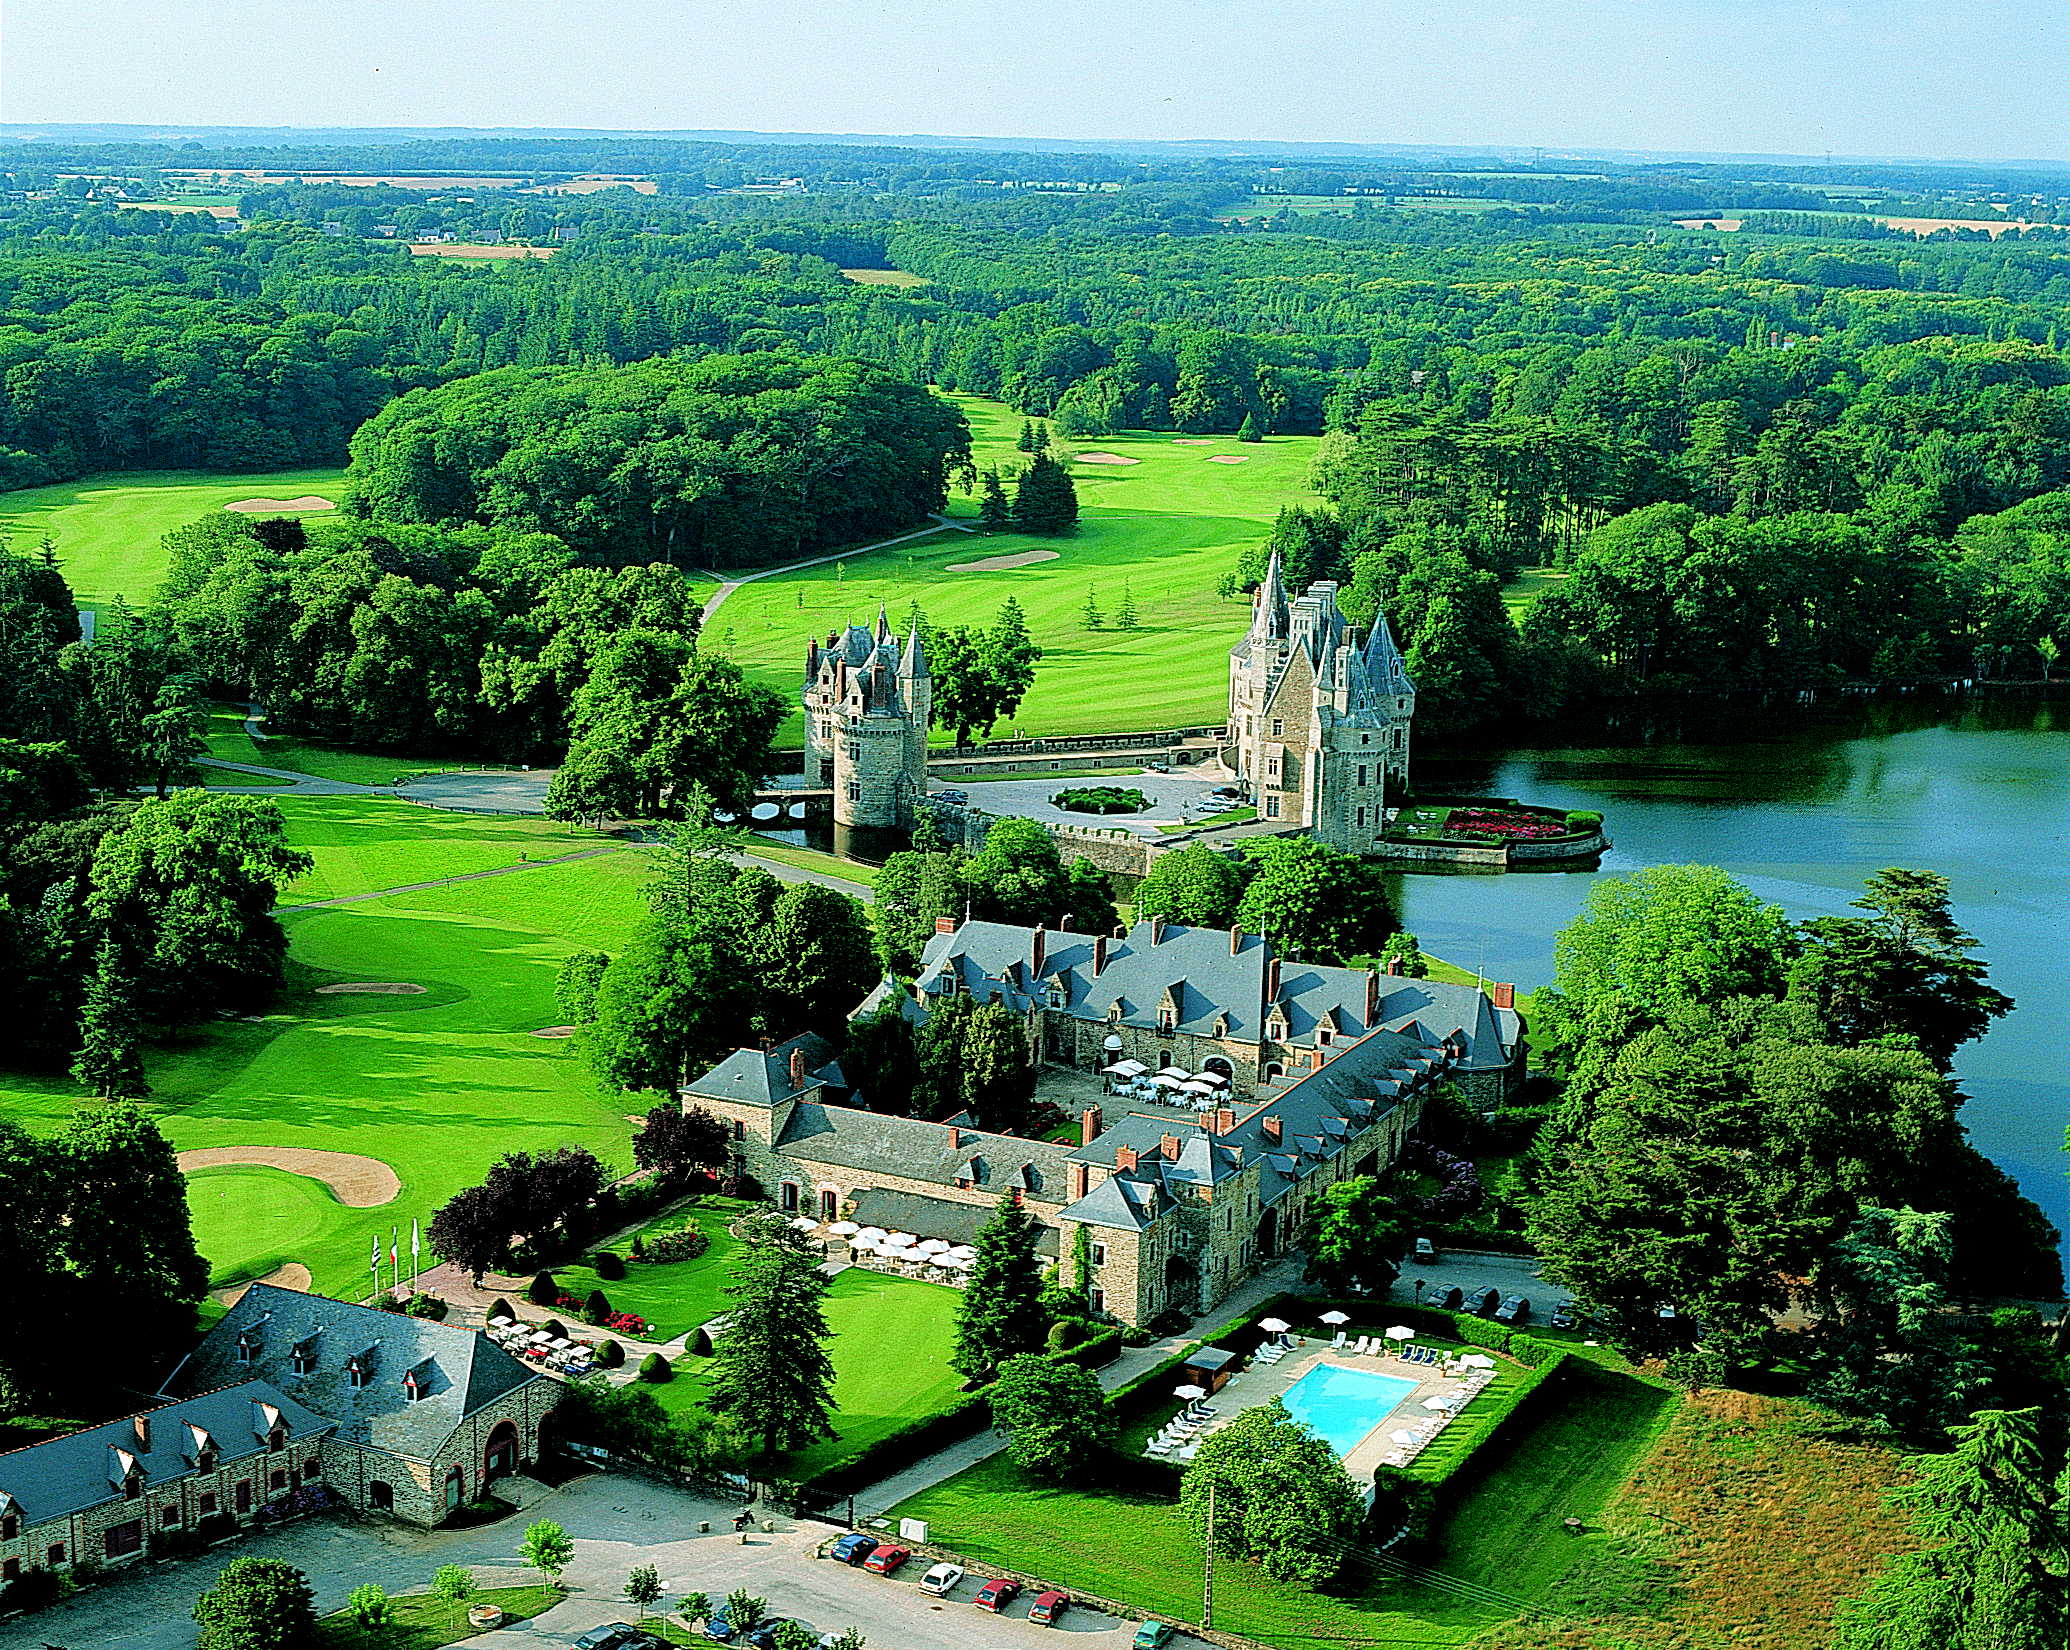 An aerial view of La Bretesche